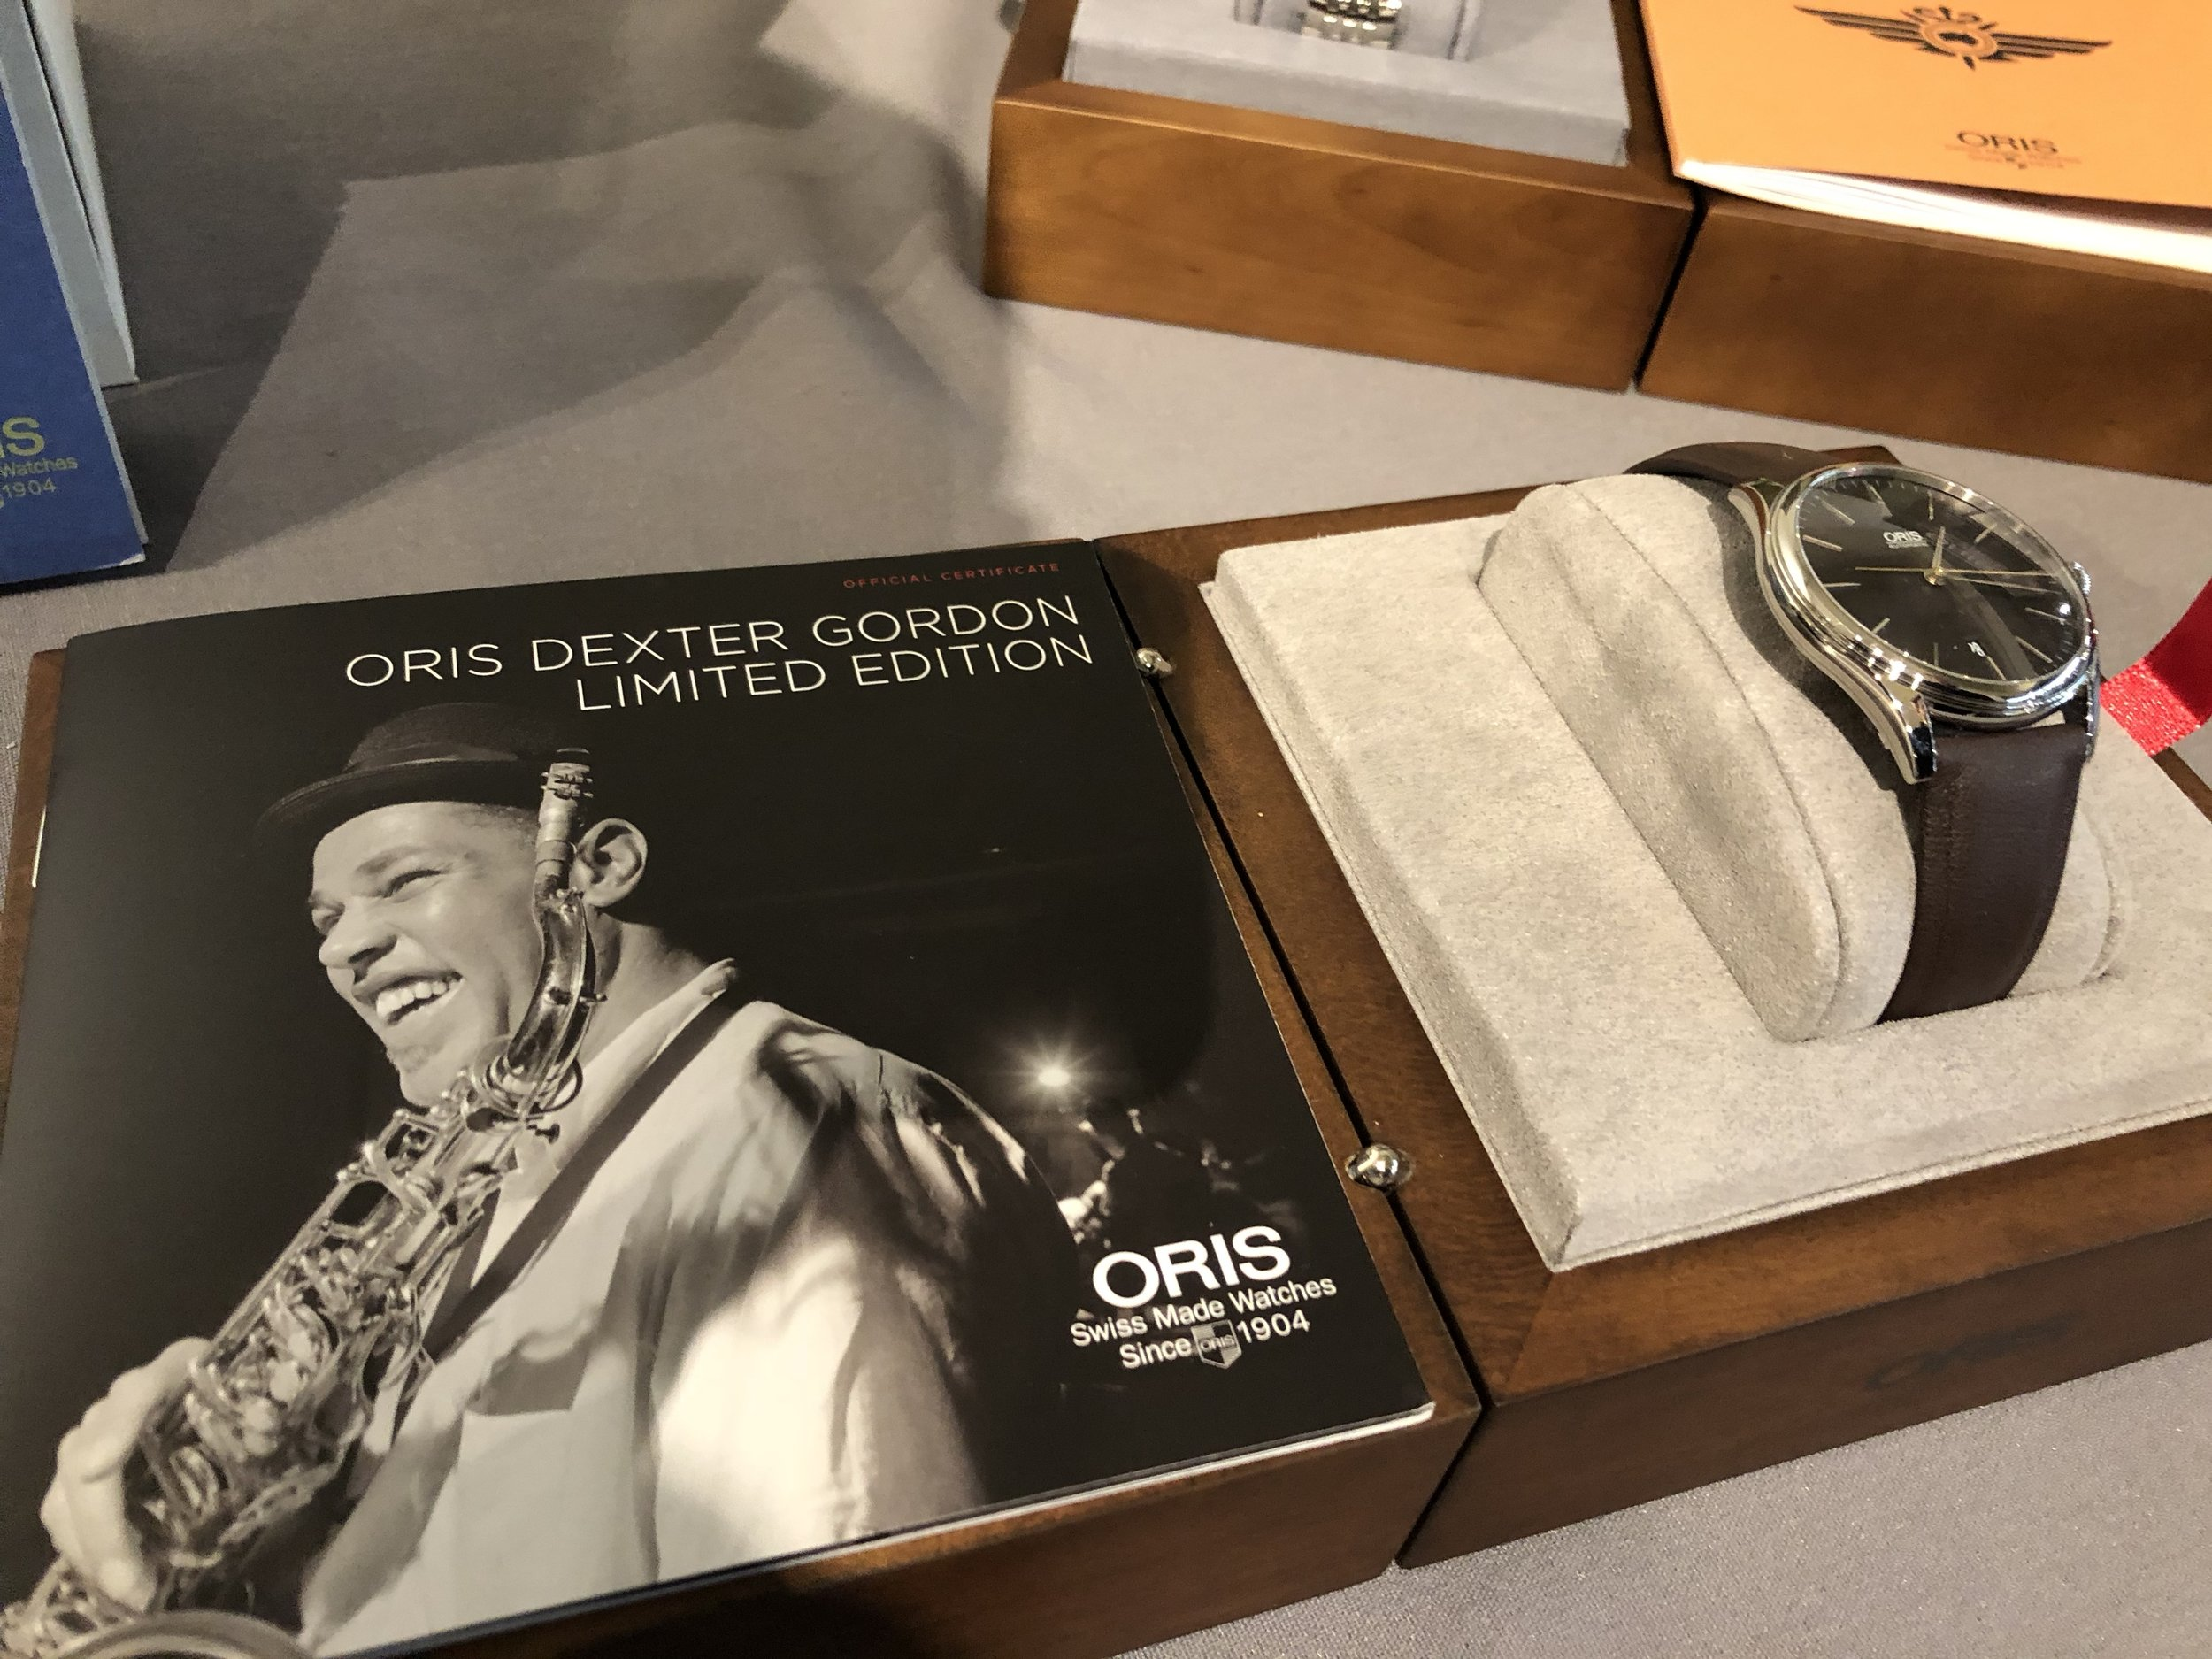 Dexter Gordon Limited Edition by Oris